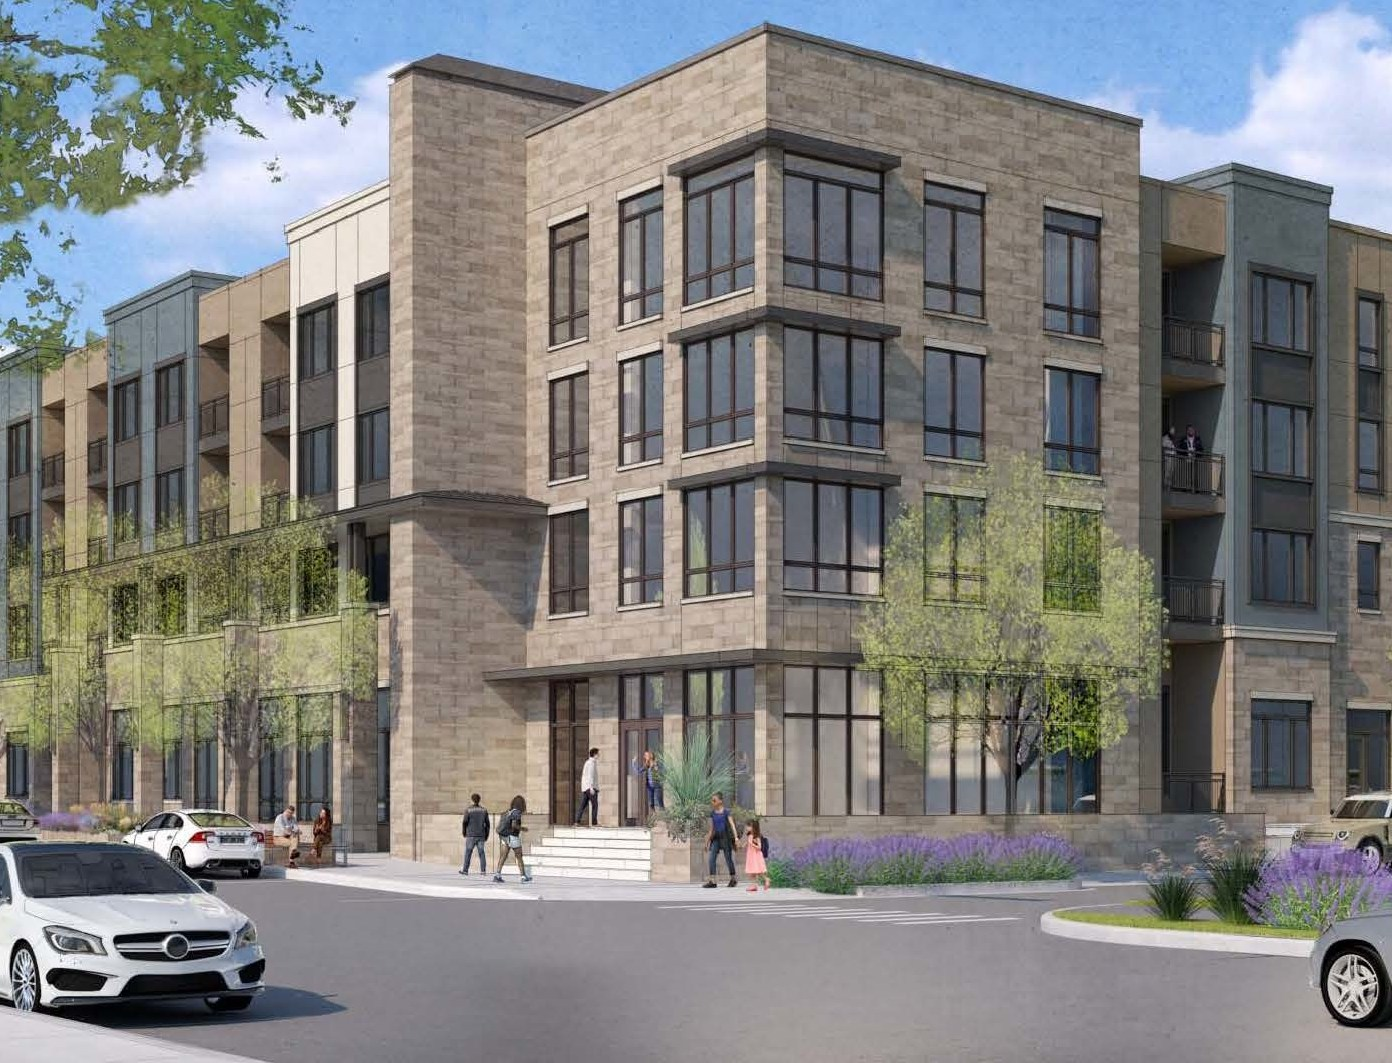 Embrey Announces Closing of Land Acquisition for 306-Unit Keene at The District Apartment Community in Centennial, Colorado